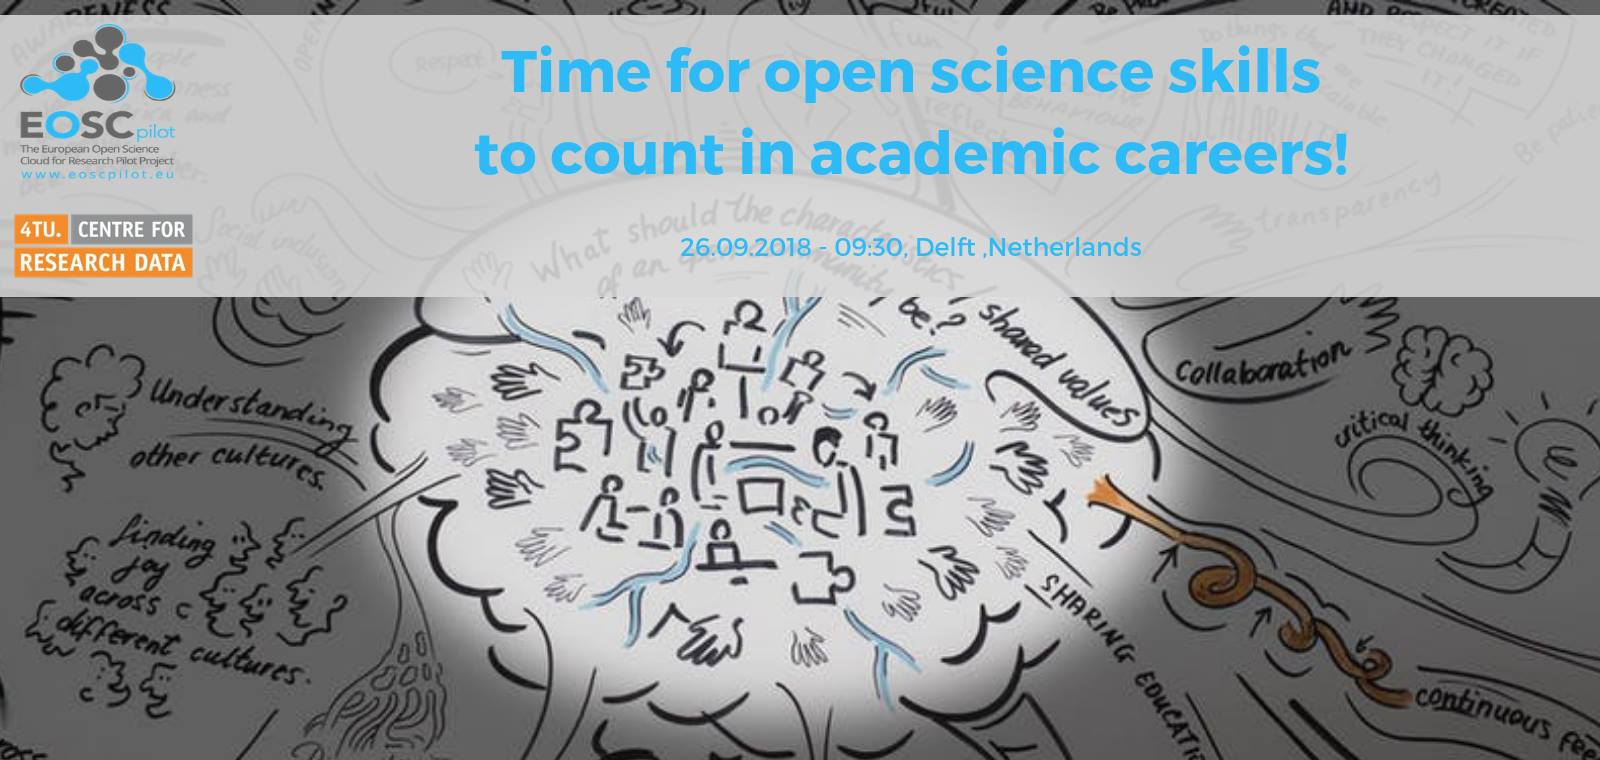 Time for open science skills to count in academic careers!